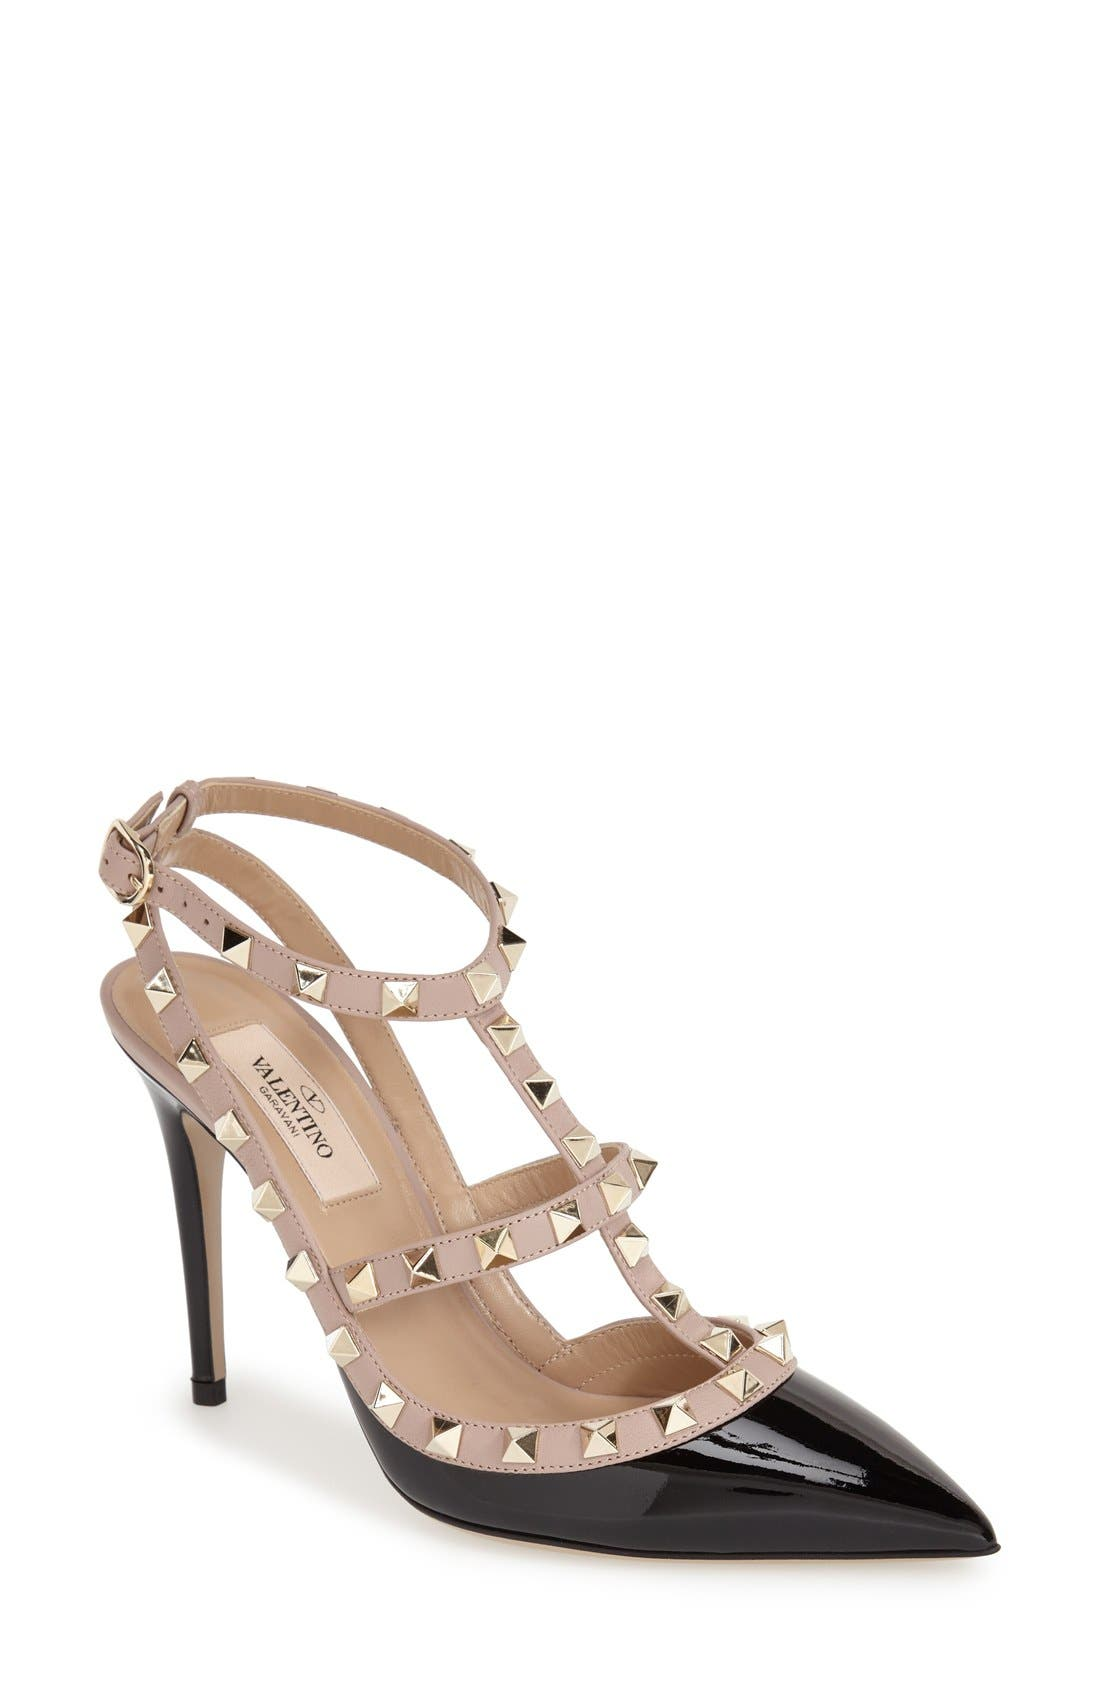 Rockstud T-Strap Pump, Main, color, BLACK/ BLUSH PATENT